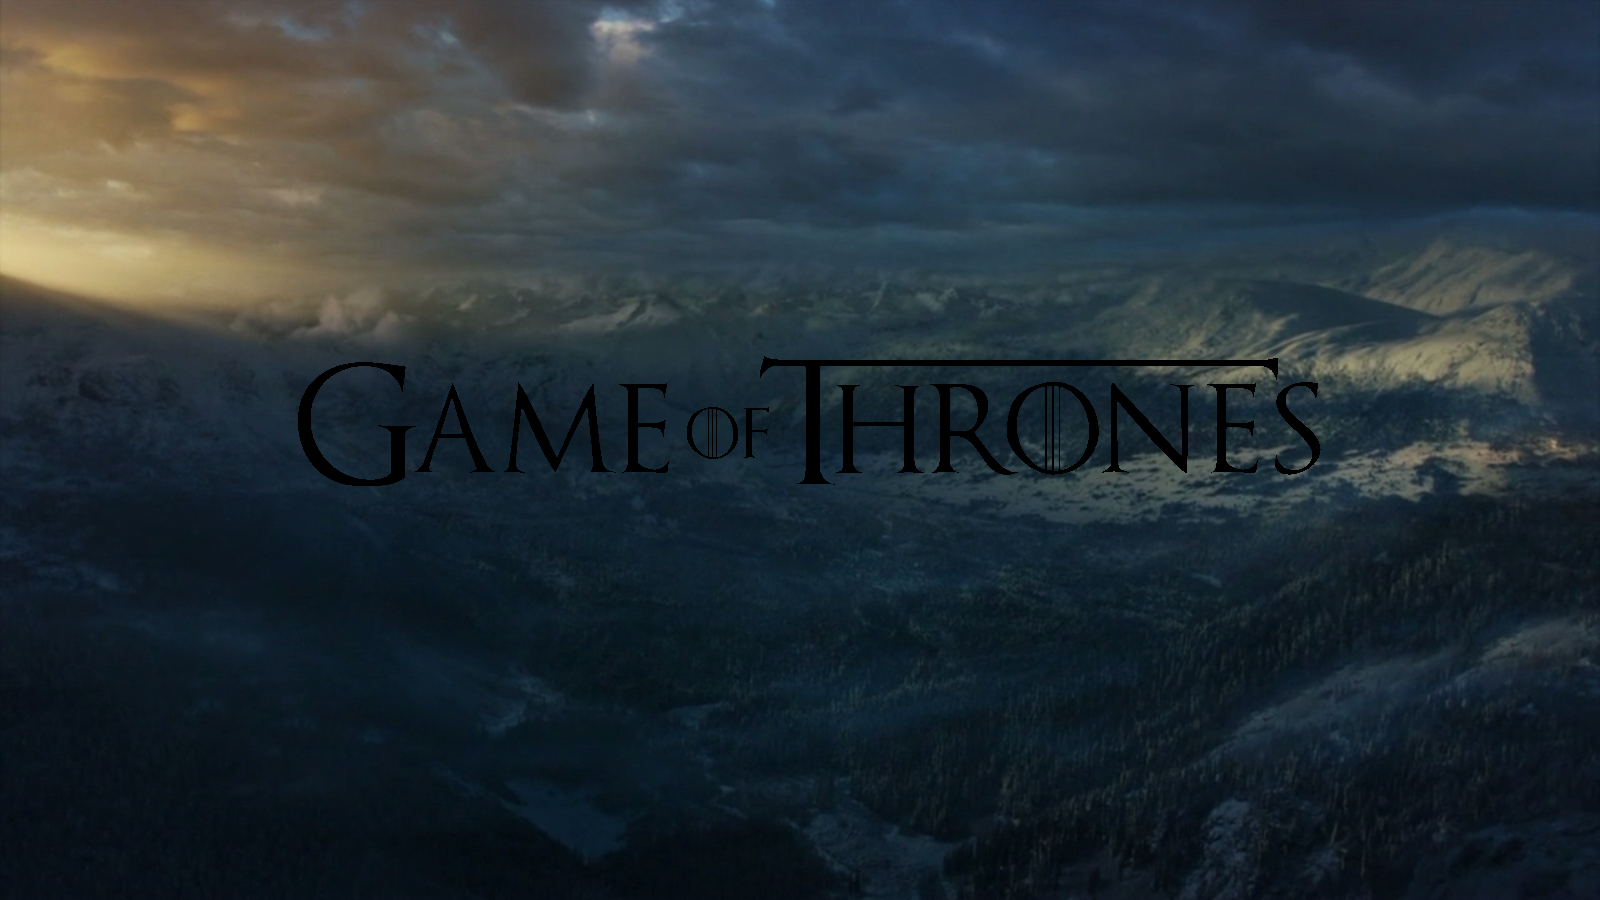 1366x768 Game Of Thrones Typography 1366x768 Resolution Hd 4k